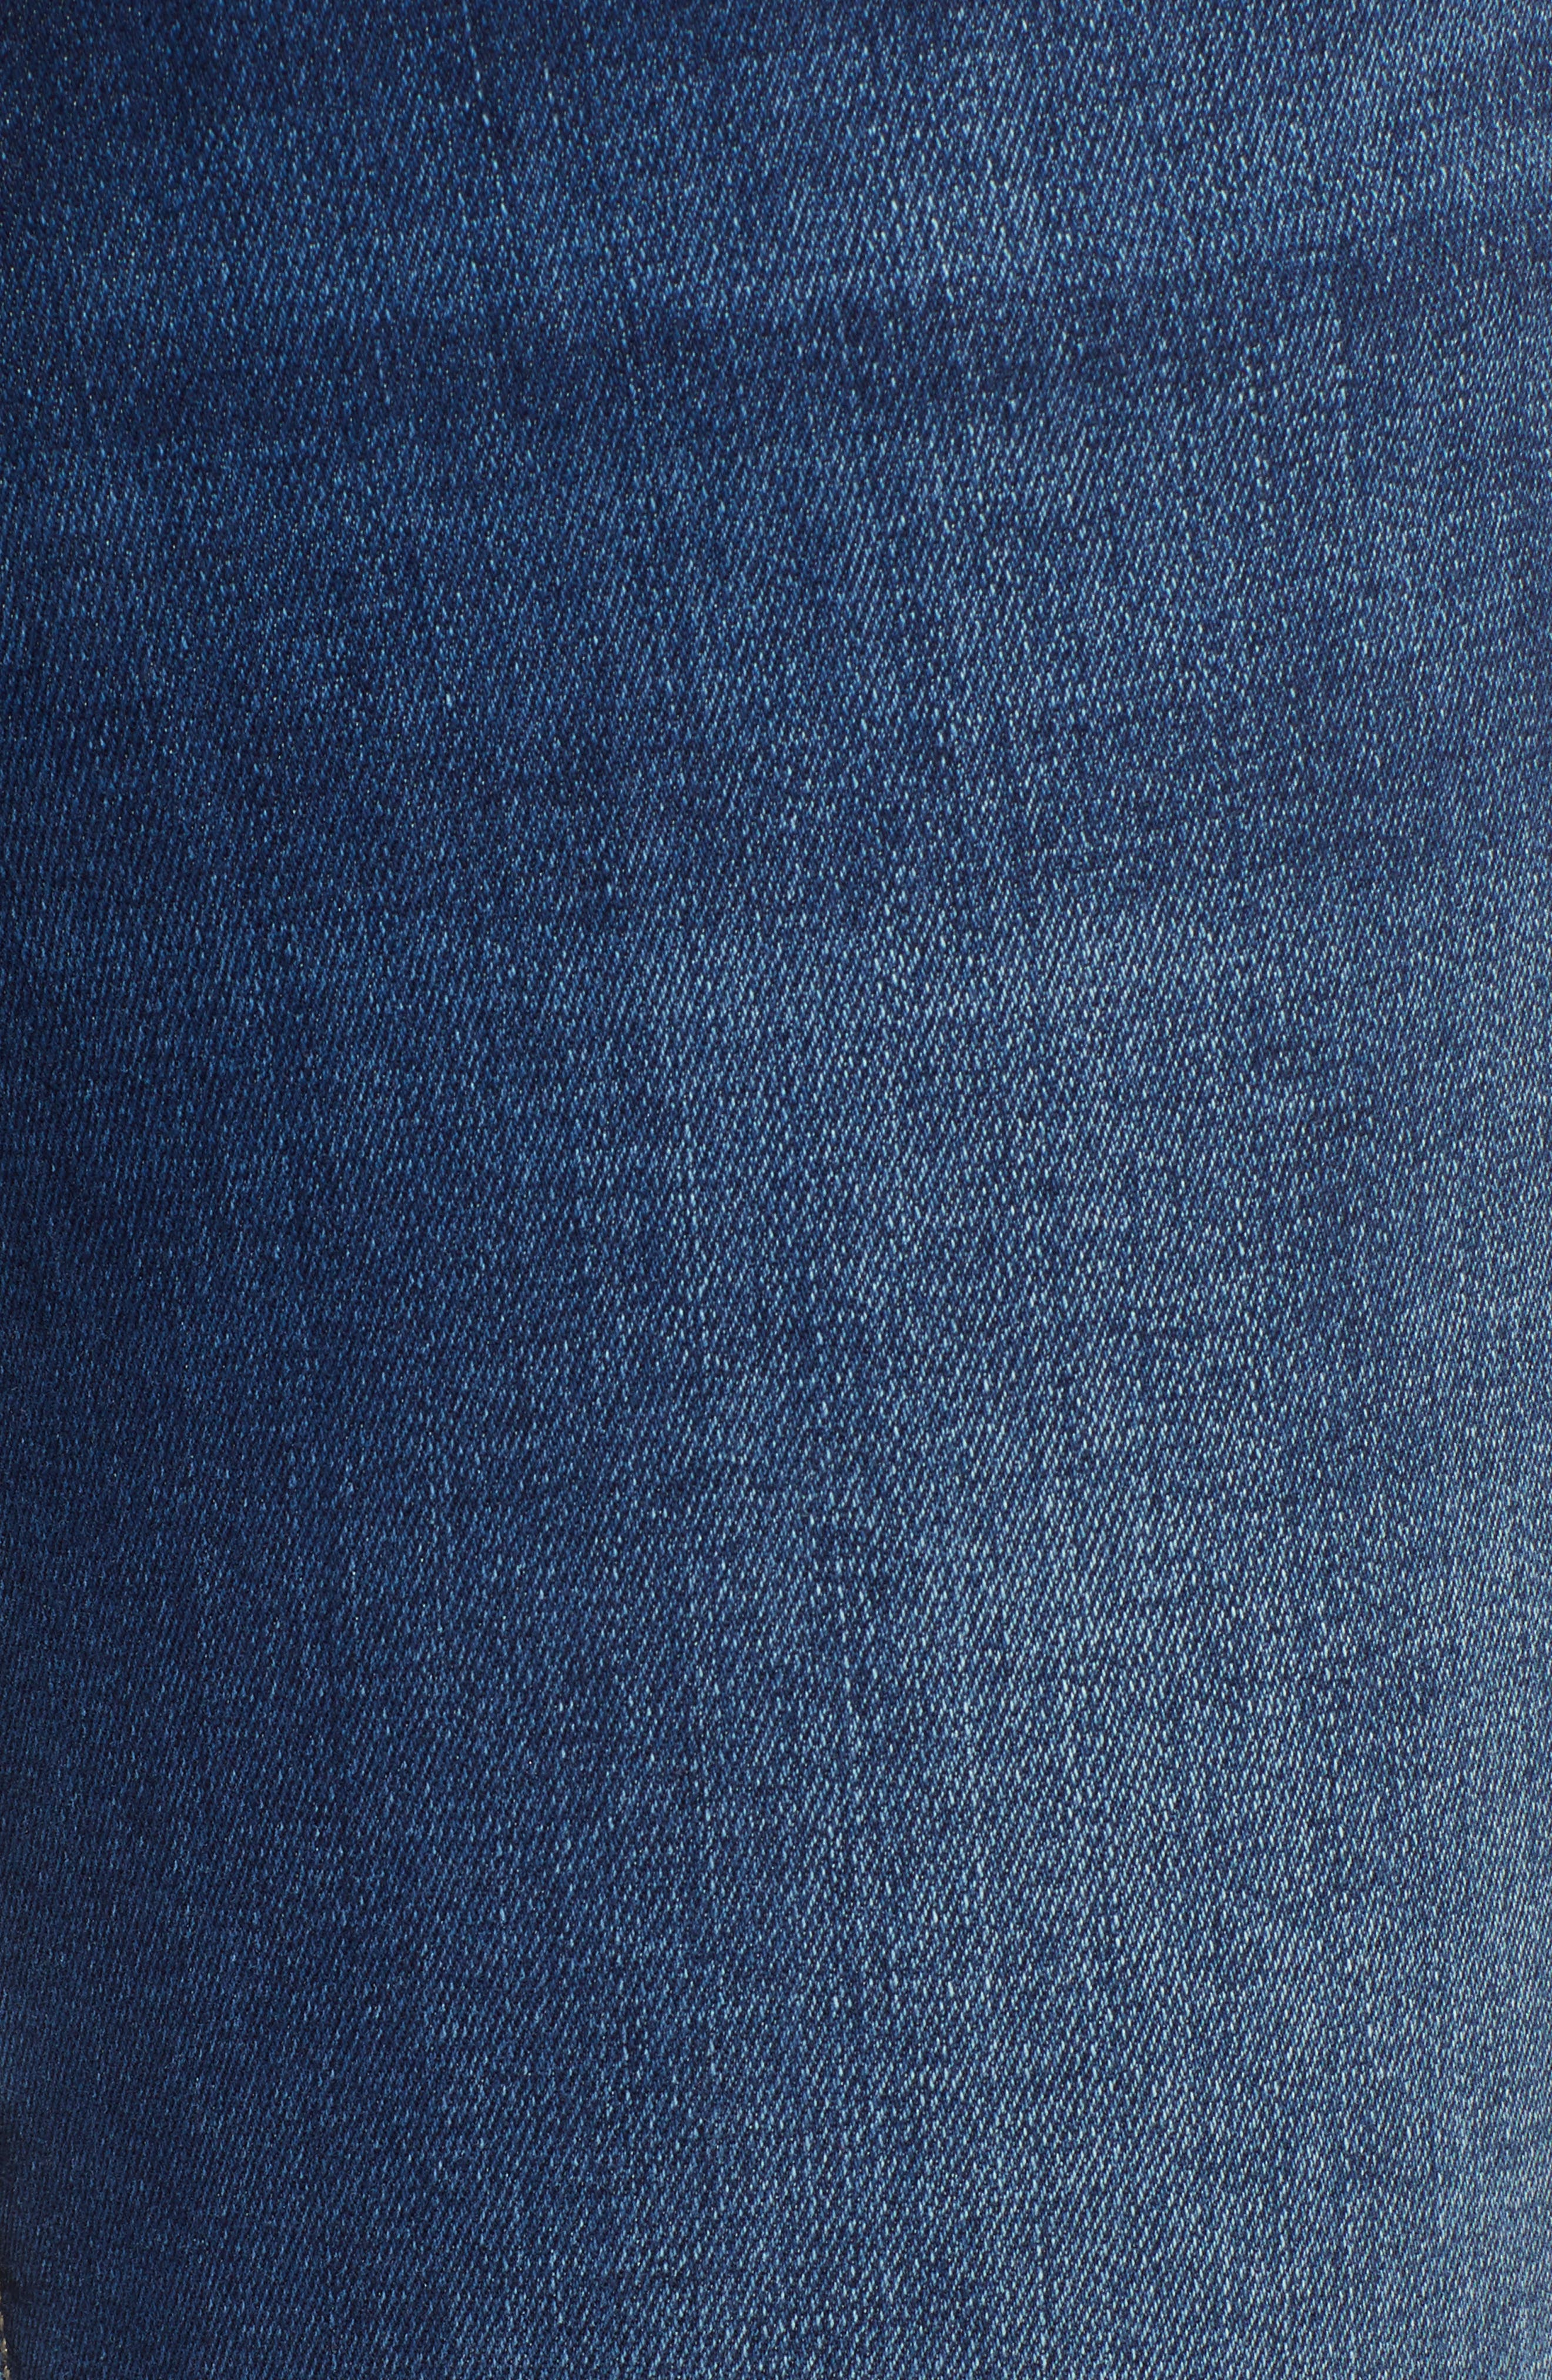 Molly Classic Bootcut Jeans,                             Alternate thumbnail 6, color,                             INDIGO SUPERSOFT